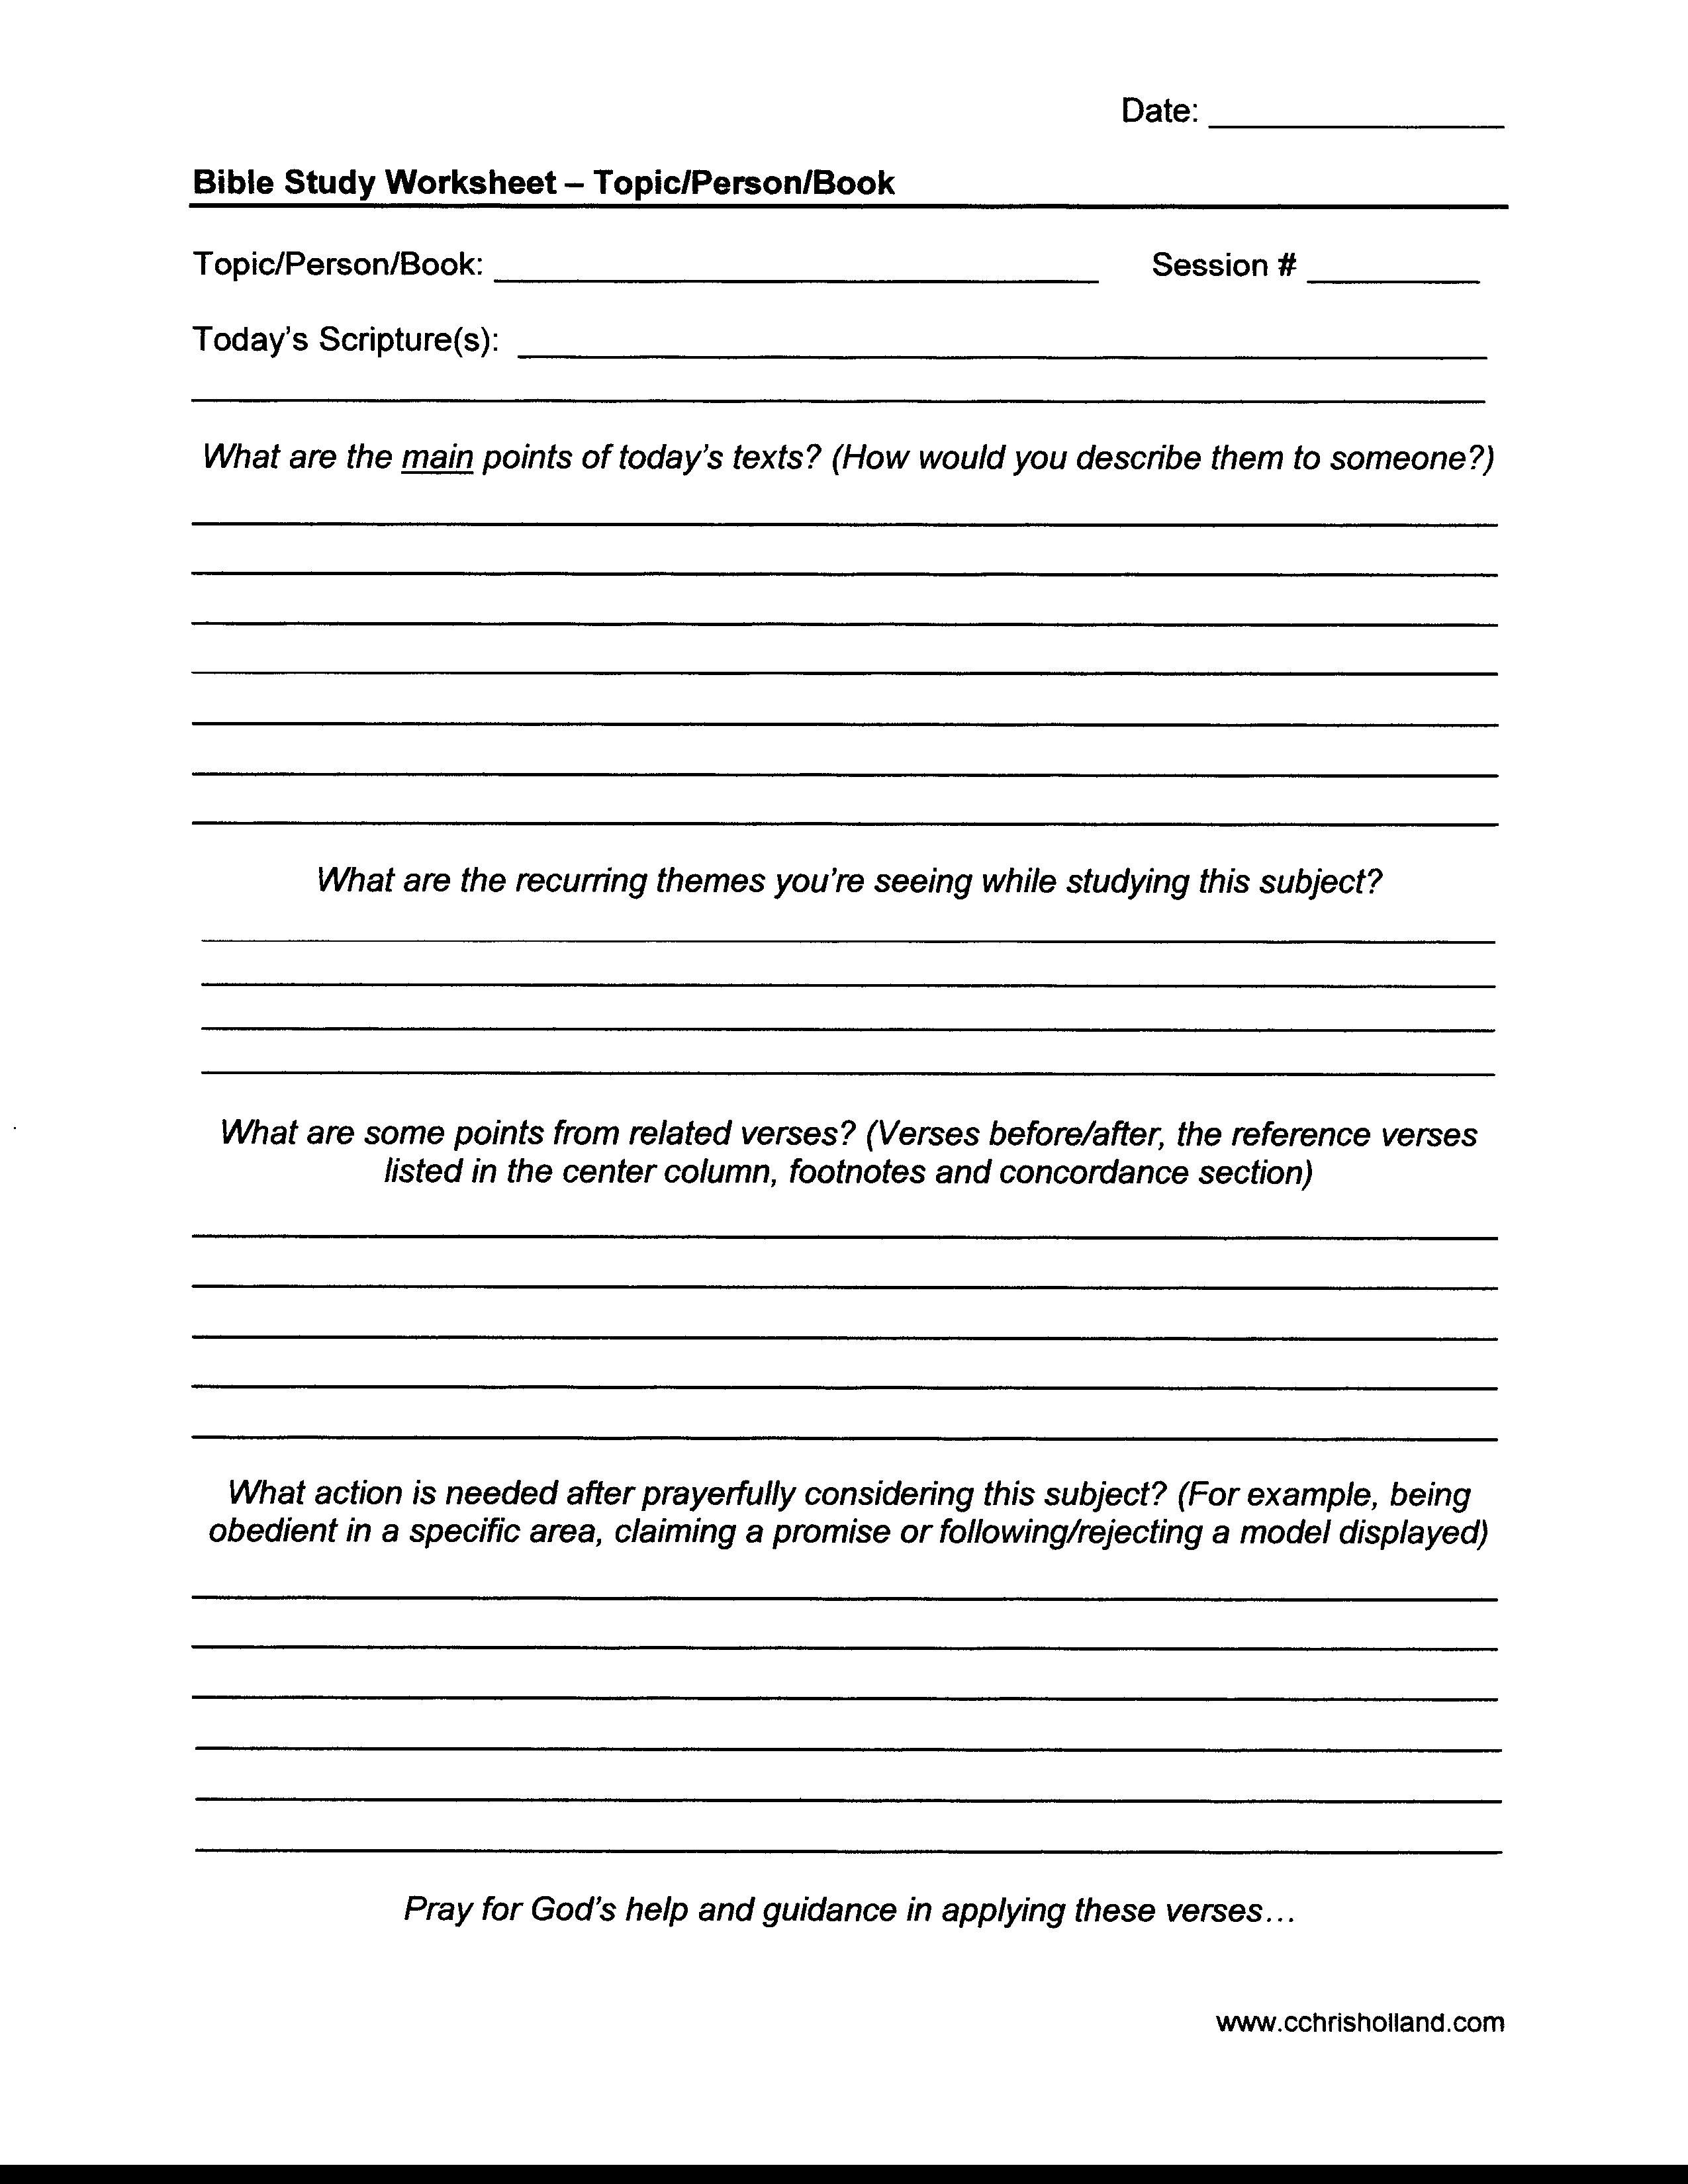 Worksheets Bible Study Worksheets For Adults bible study worksheet topic person book prayer journals book